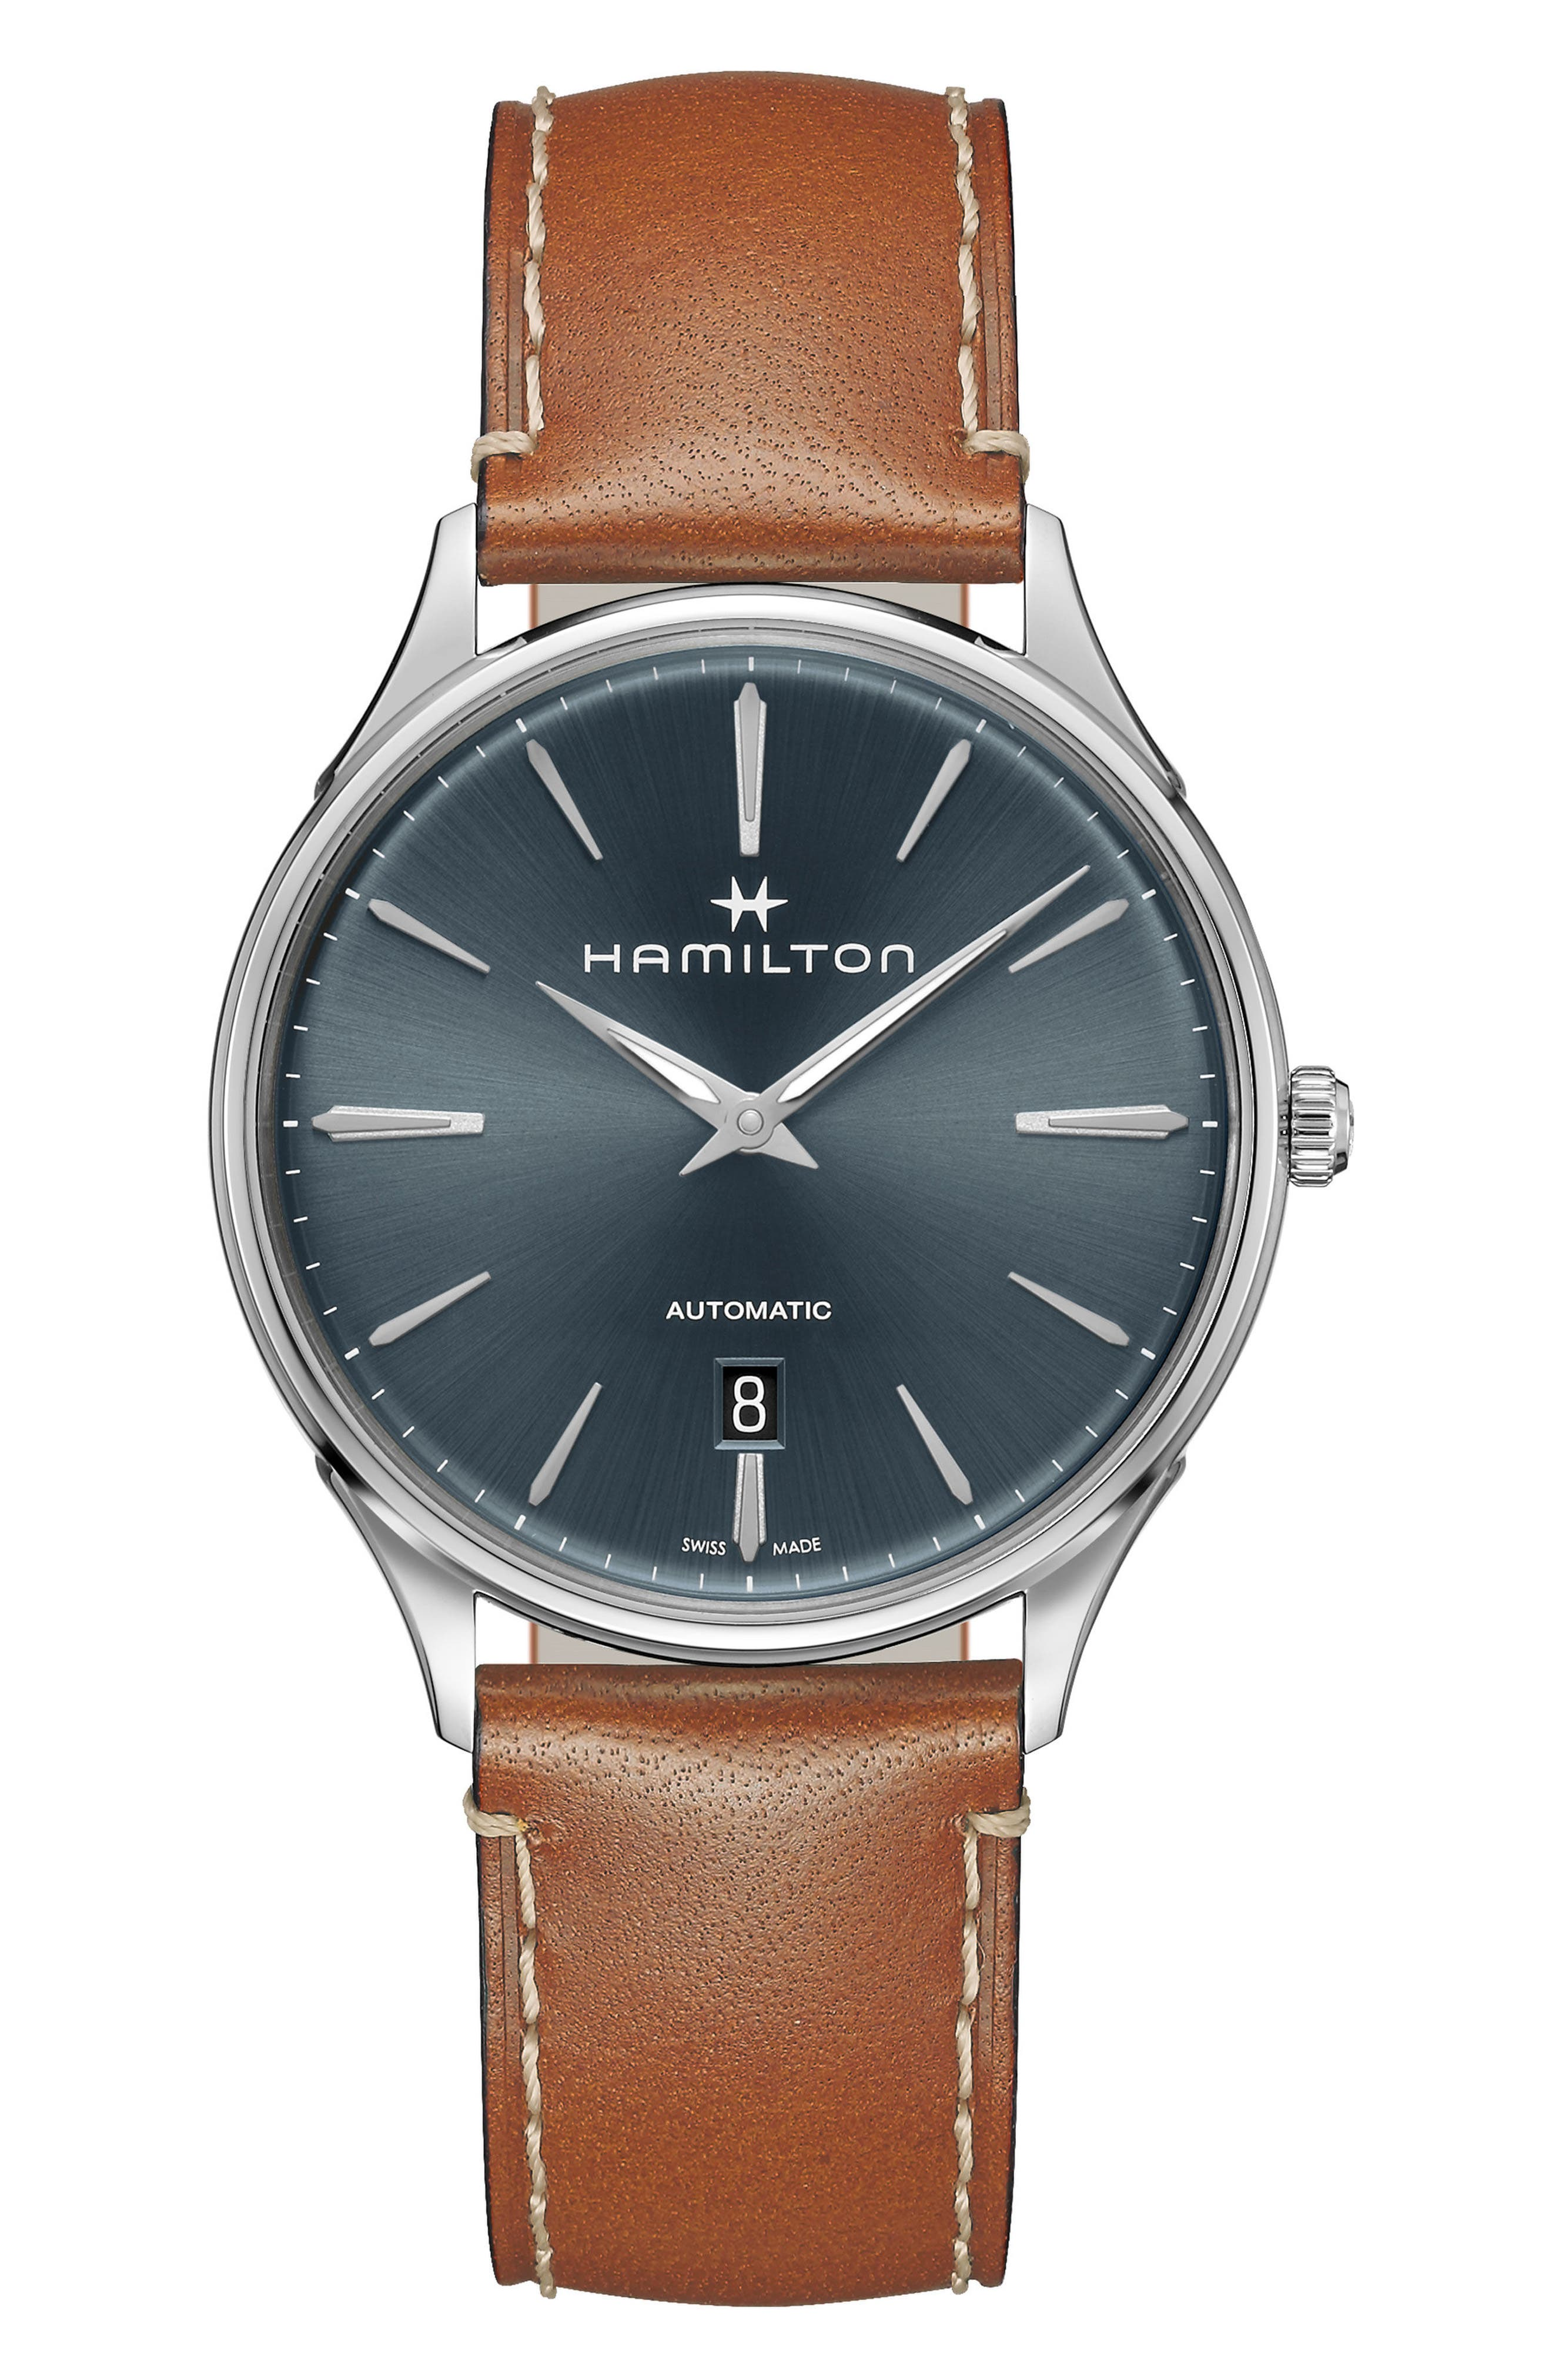 HAMILTON Jazzmaster Thinline Automatic Leather Strap Watch, 40mm, Main, color, BROWN/ BLUE/ SILVER